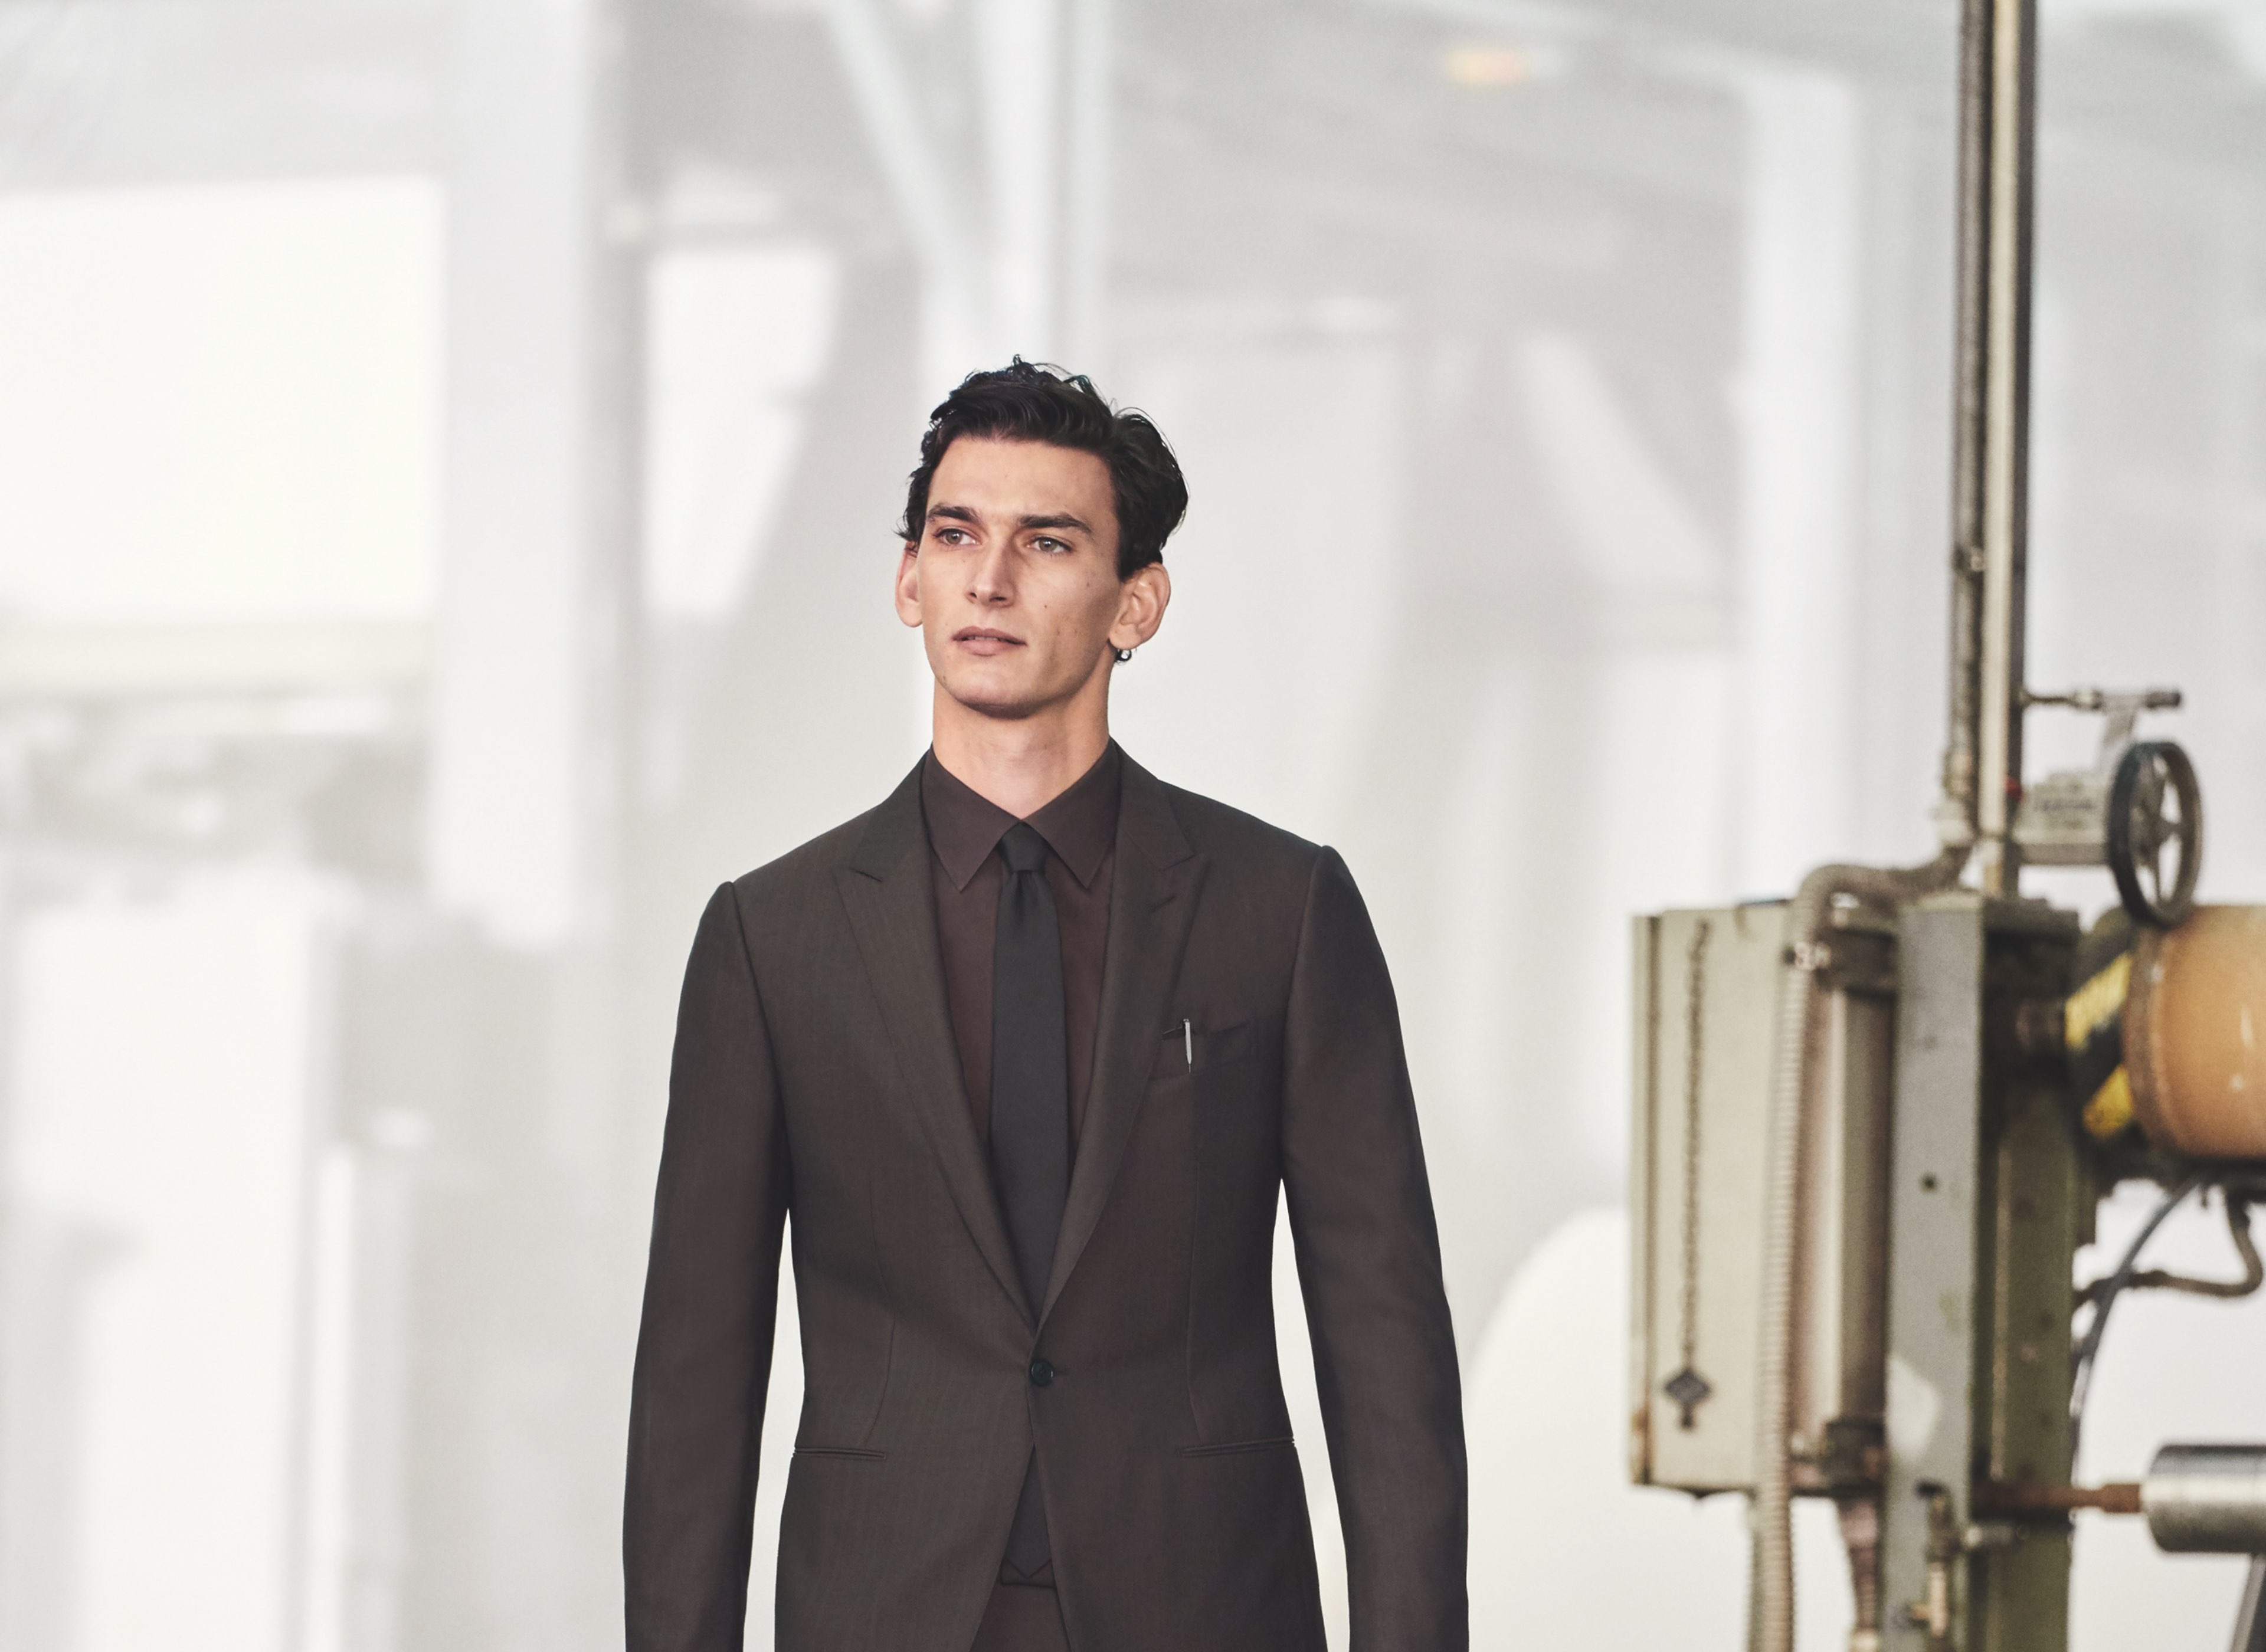 The way to do tailoring: men's custom suit | My Zegna